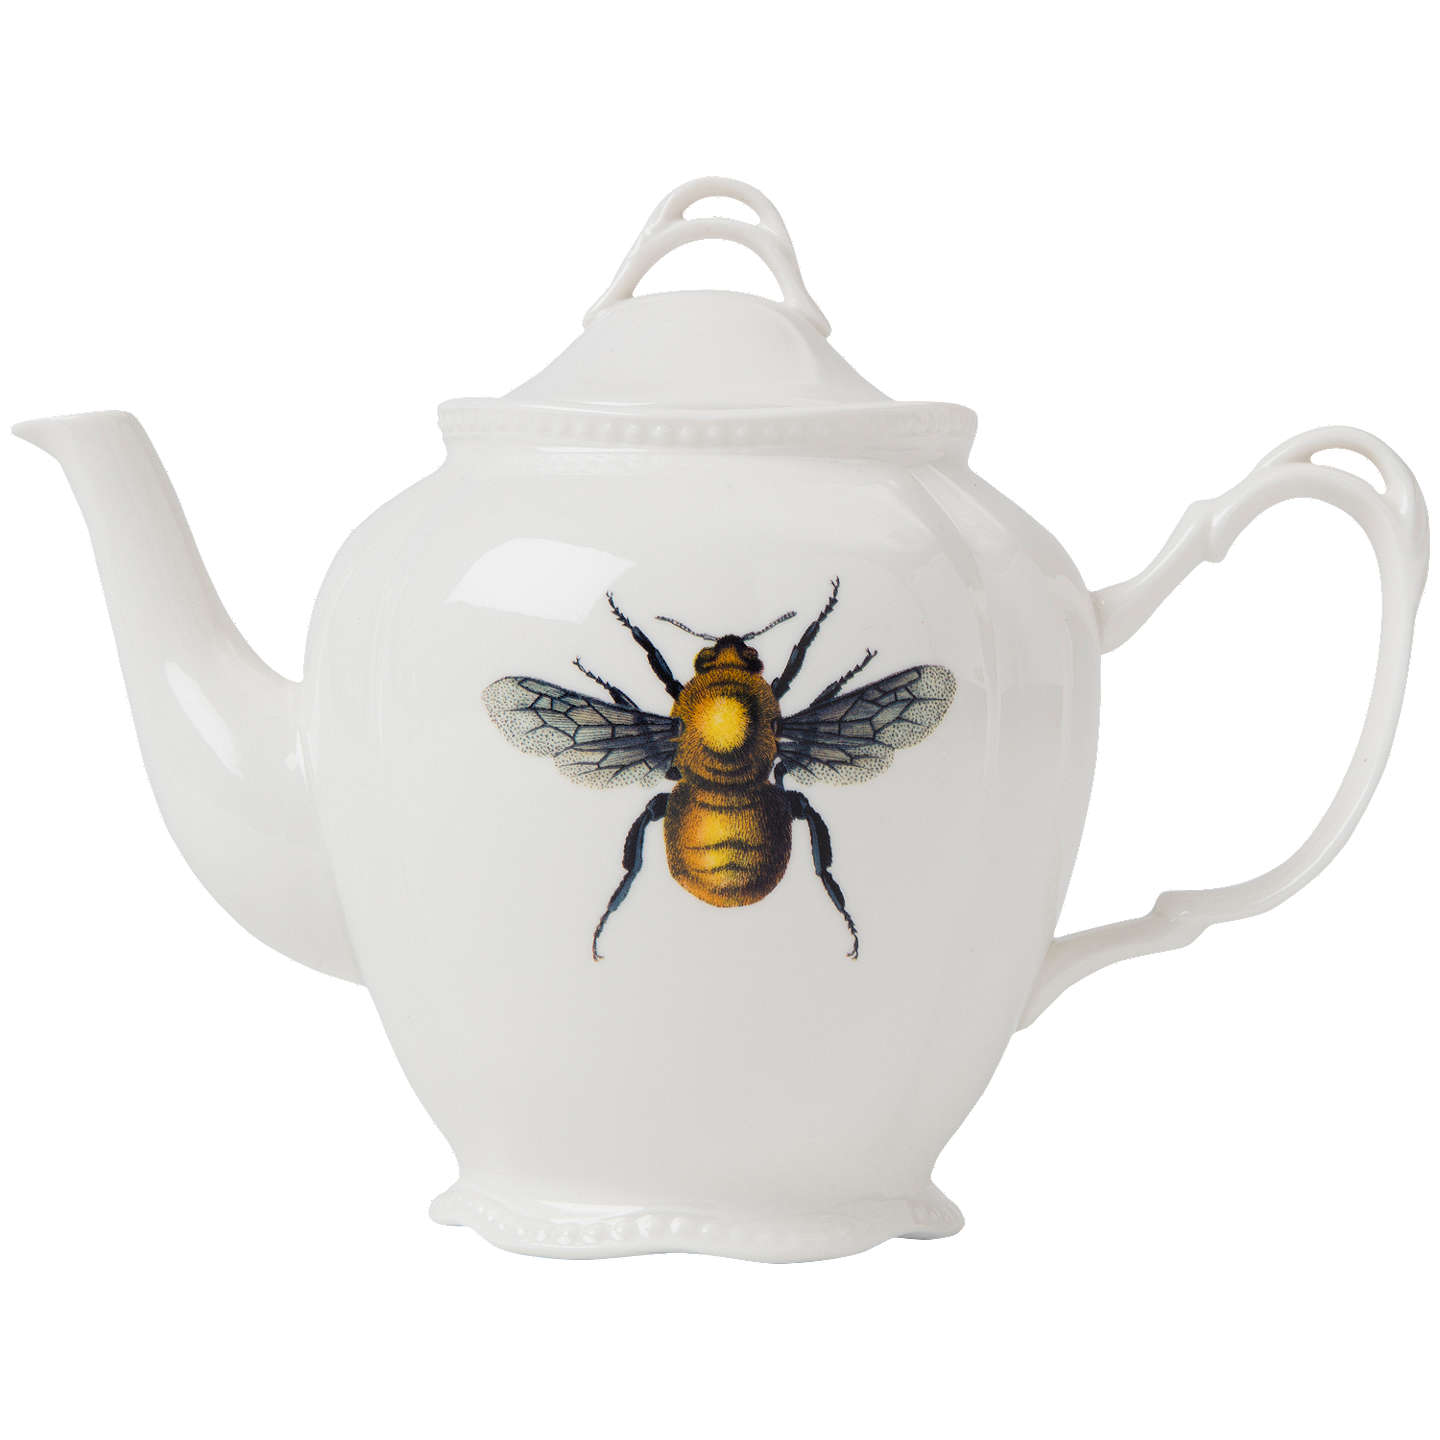 Buymagpie Curios Bee Teapot, Whitemulti, 921Ml Online At Johnlewiscom